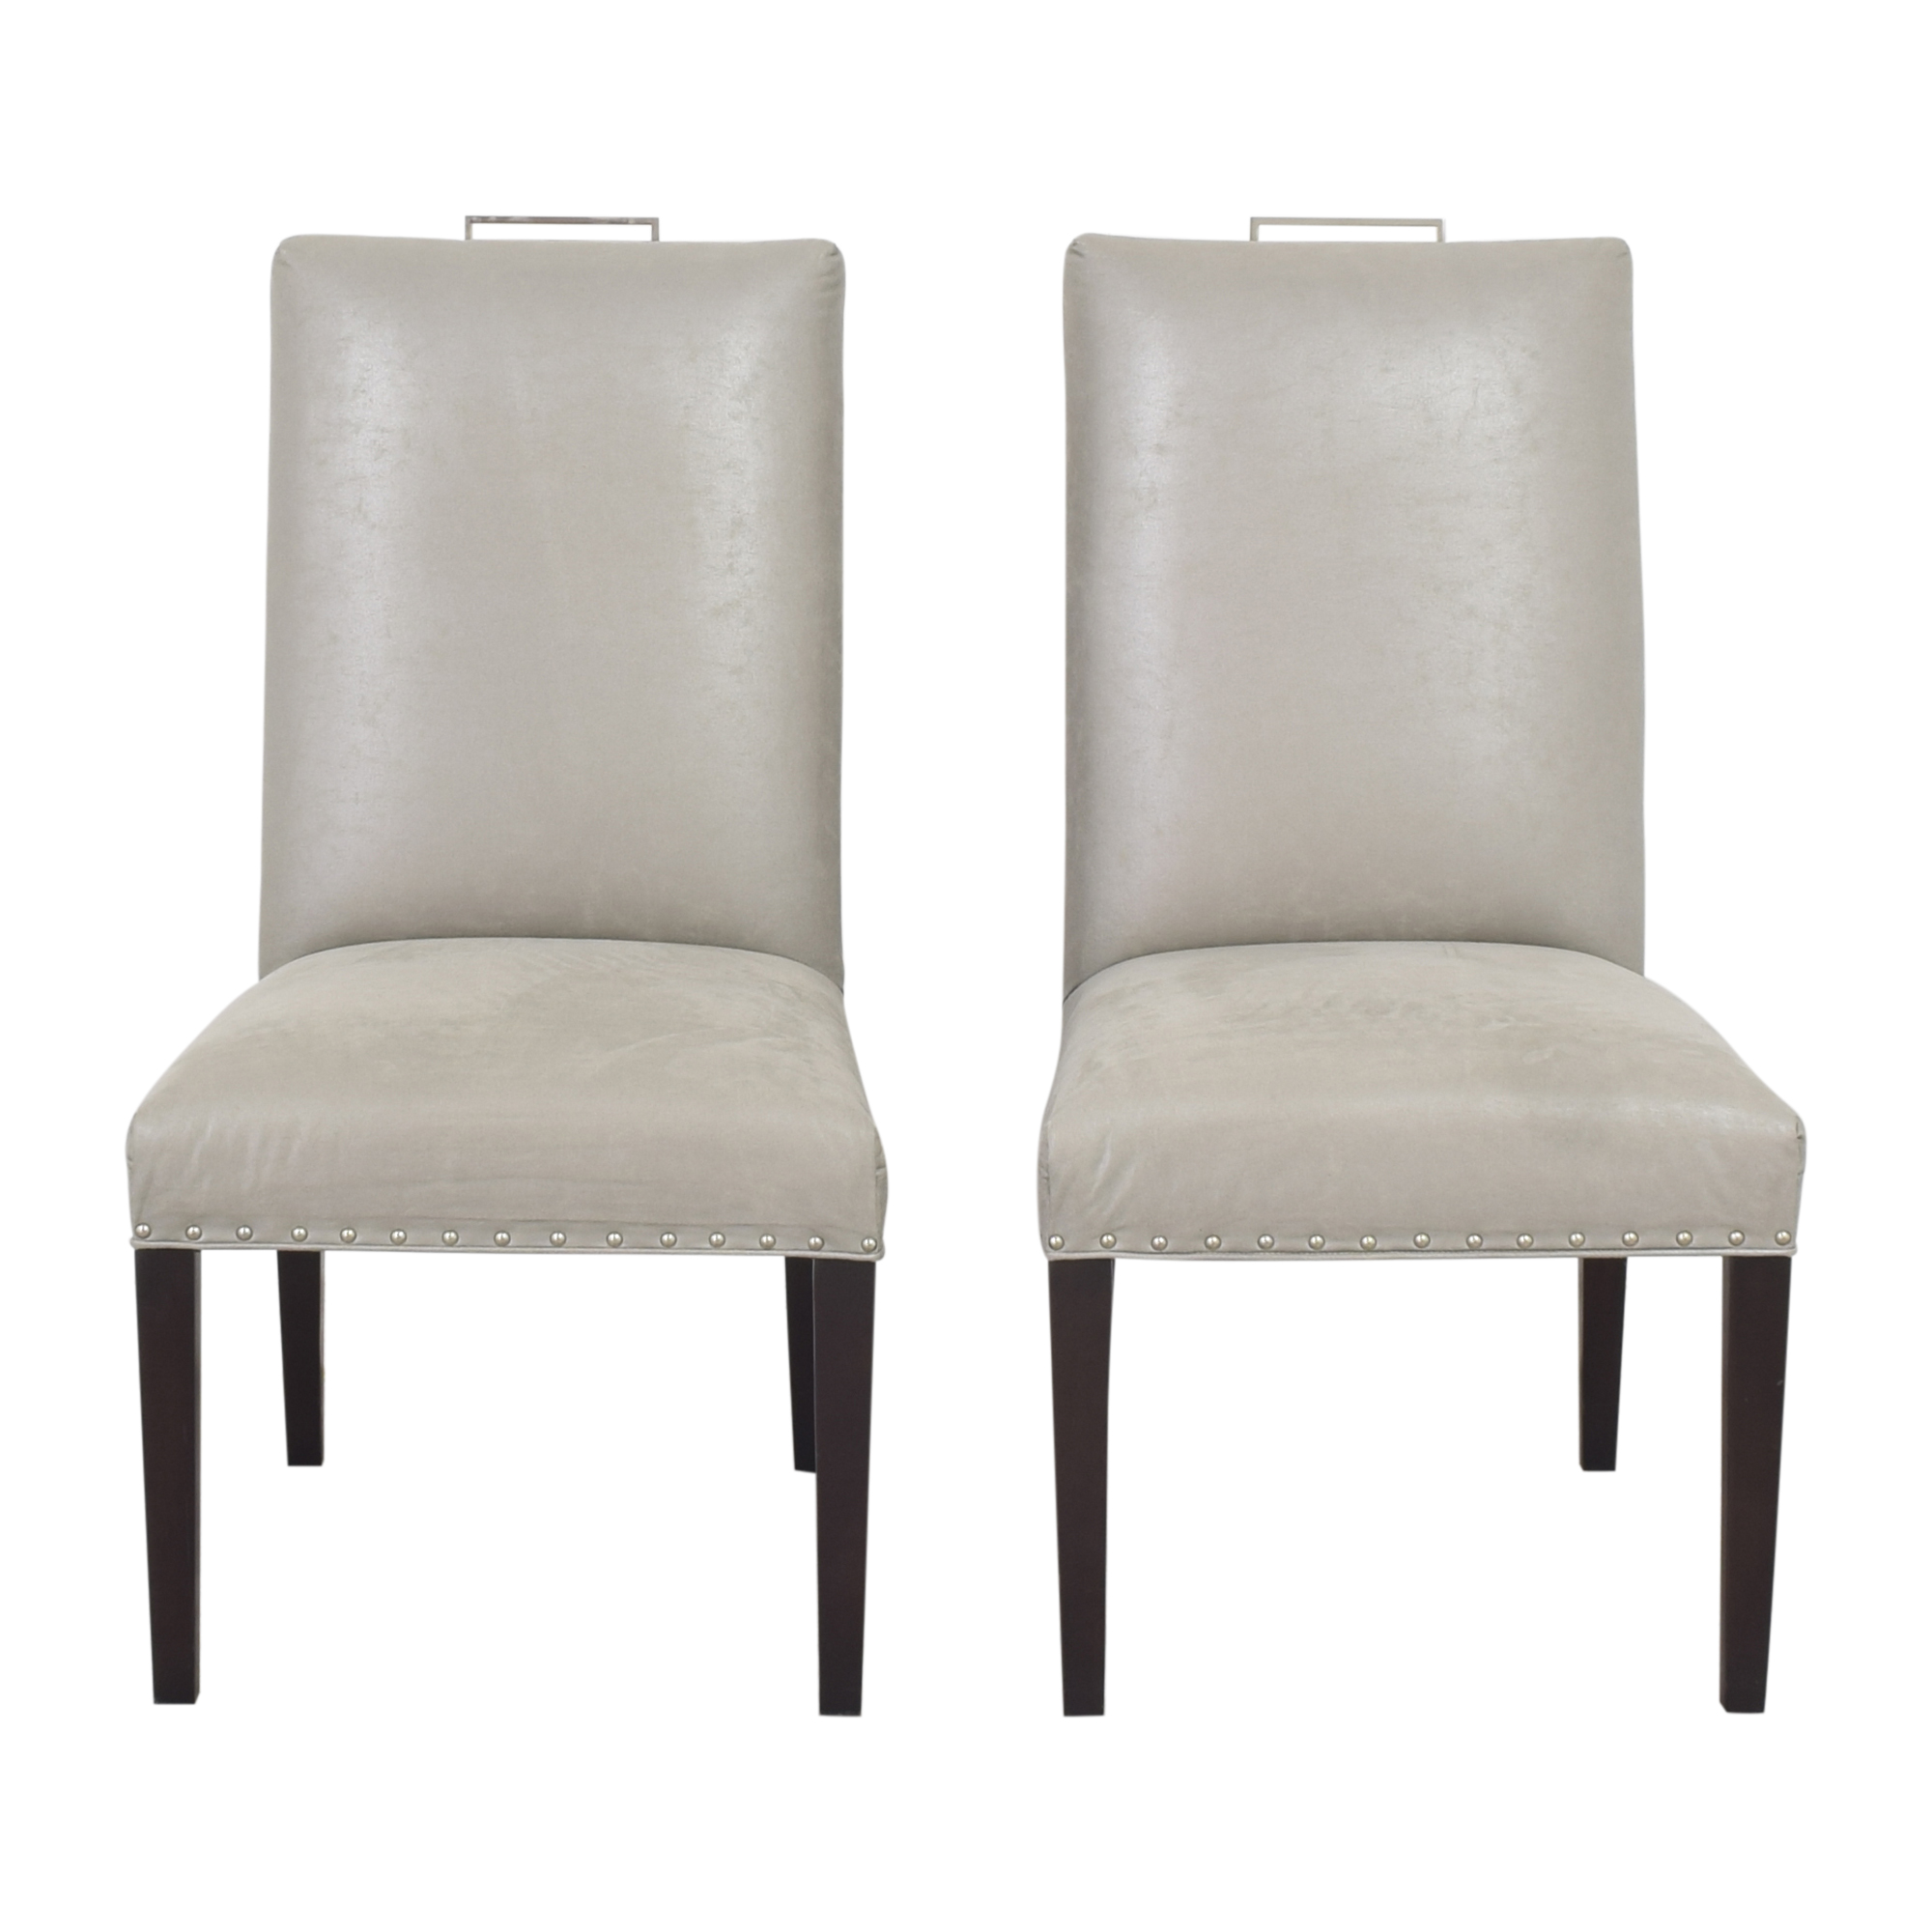 shop Vanguard Furniture Vanguard Michael Weiss Everhart Side Dining Chairs online